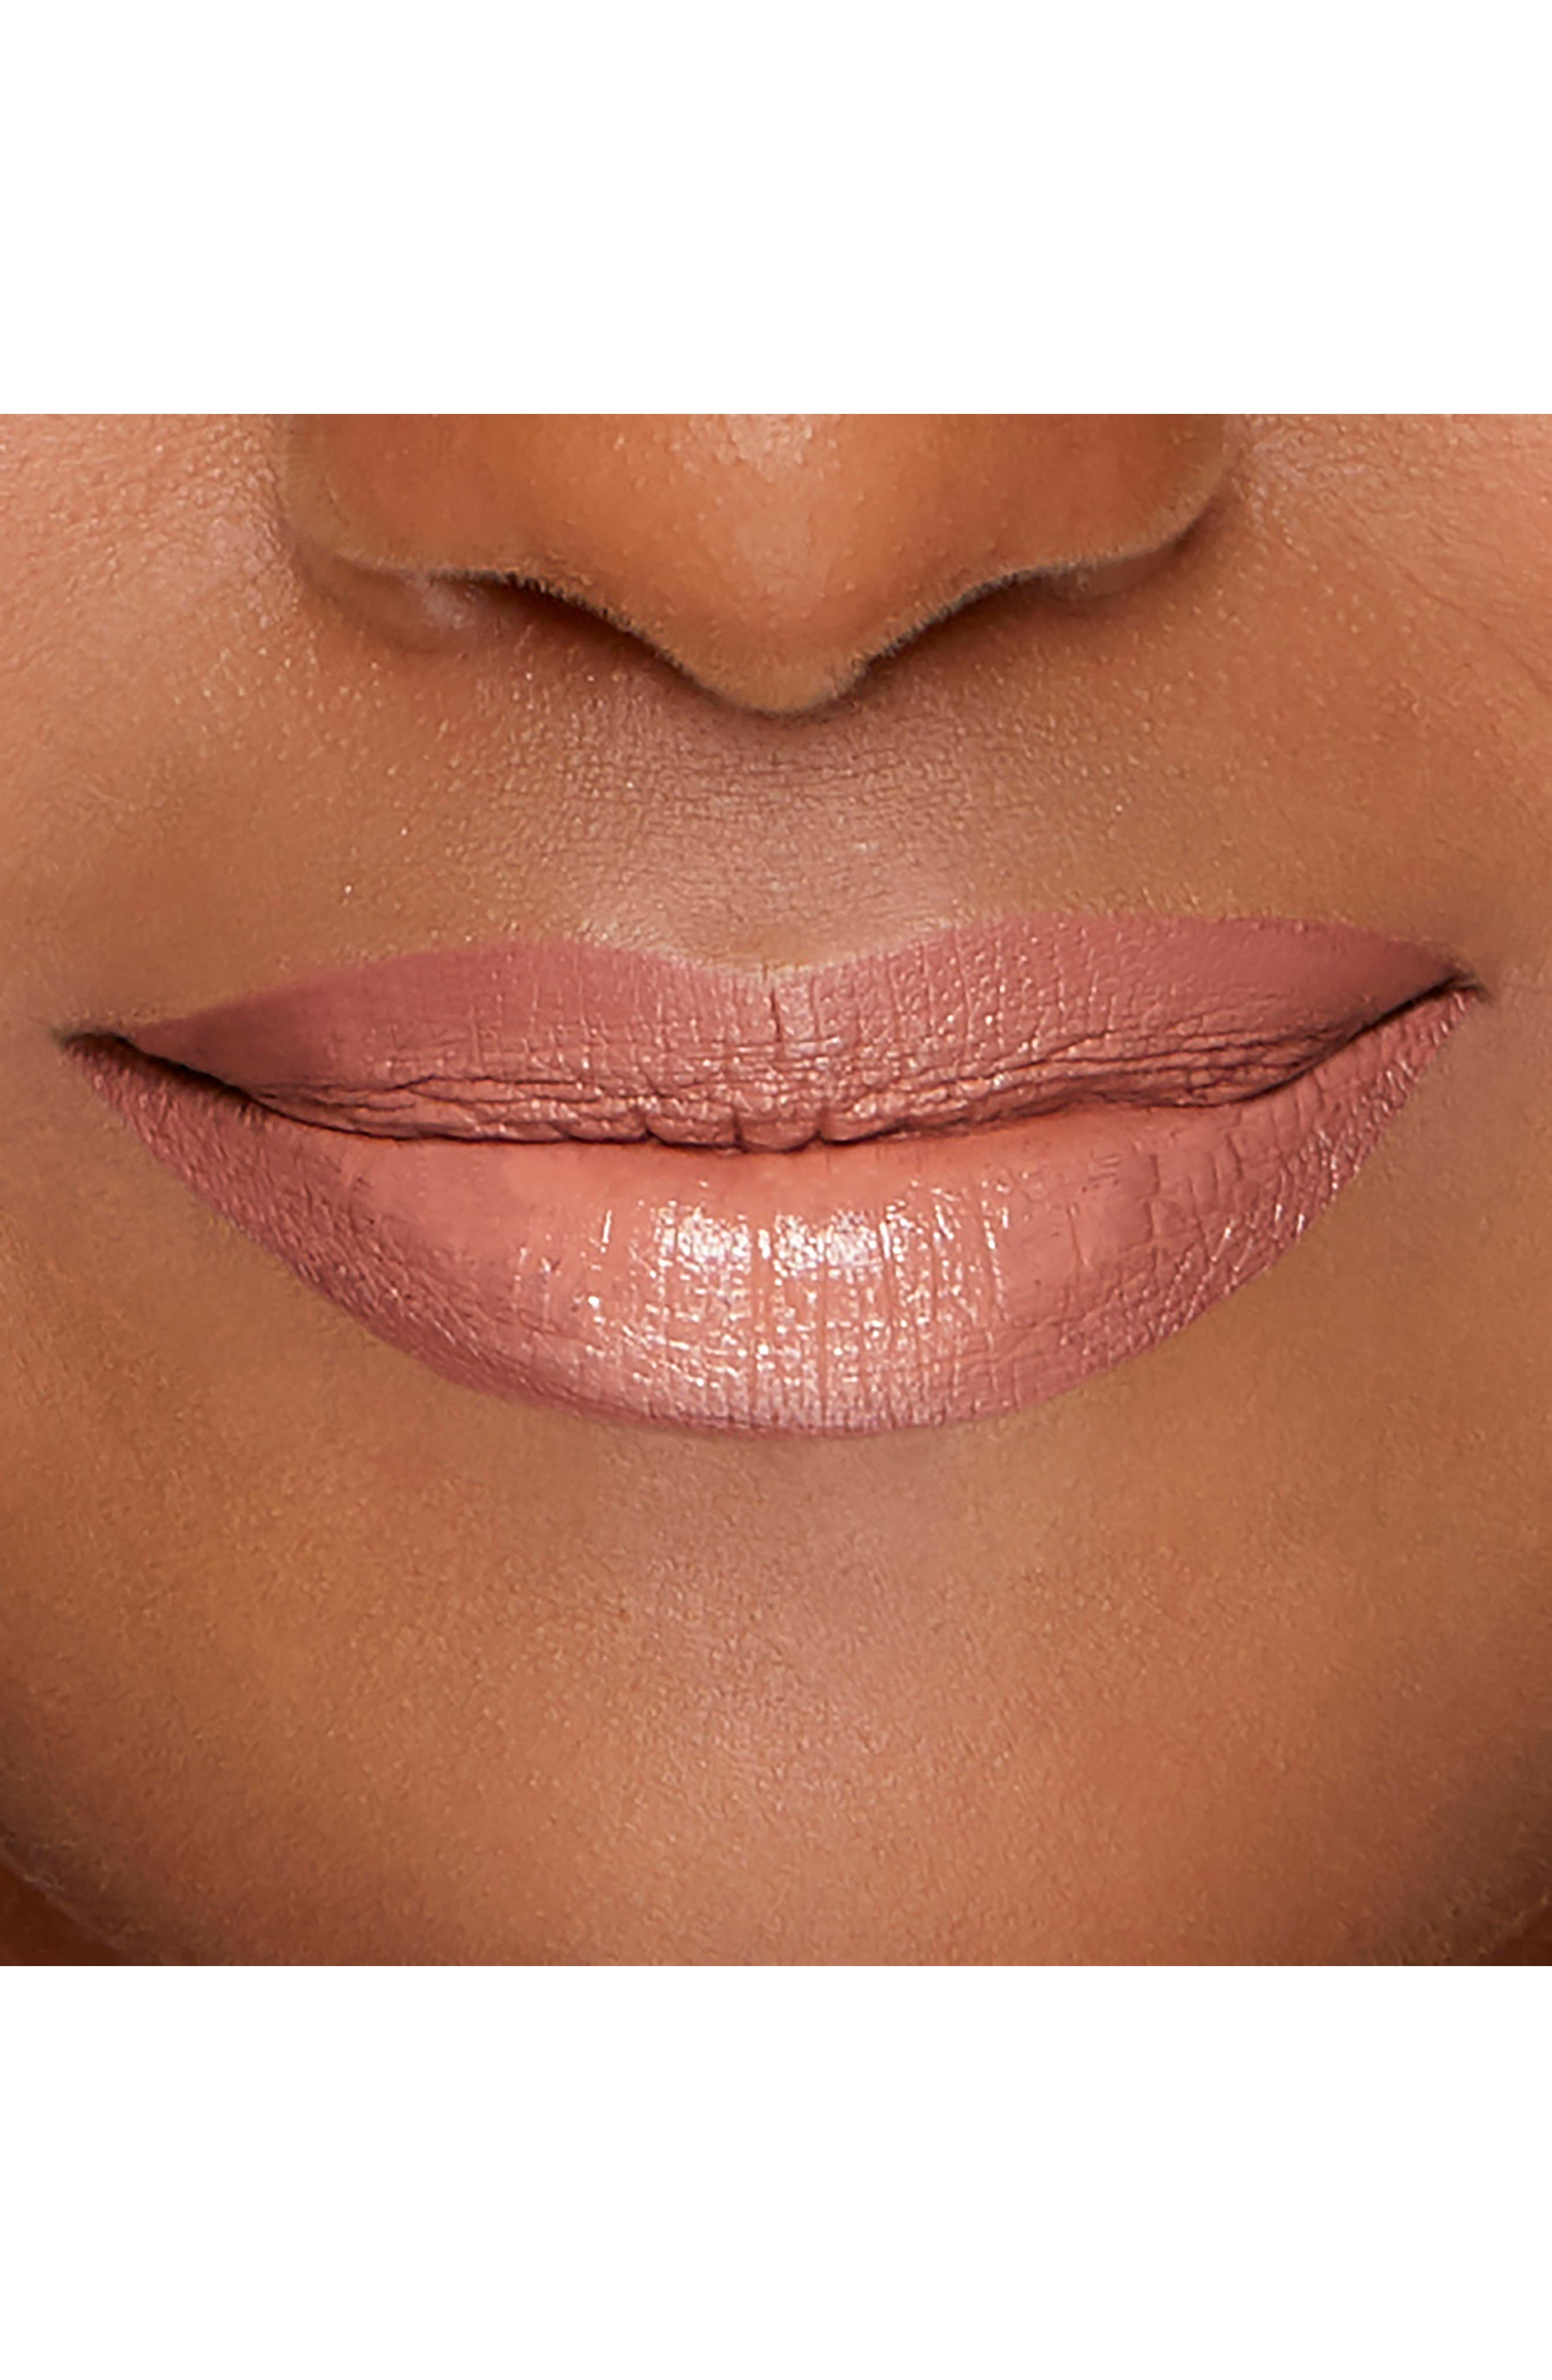 Melted Liquified Long Wear Lipstick,                             Alternate thumbnail 6, color,                             NUDE